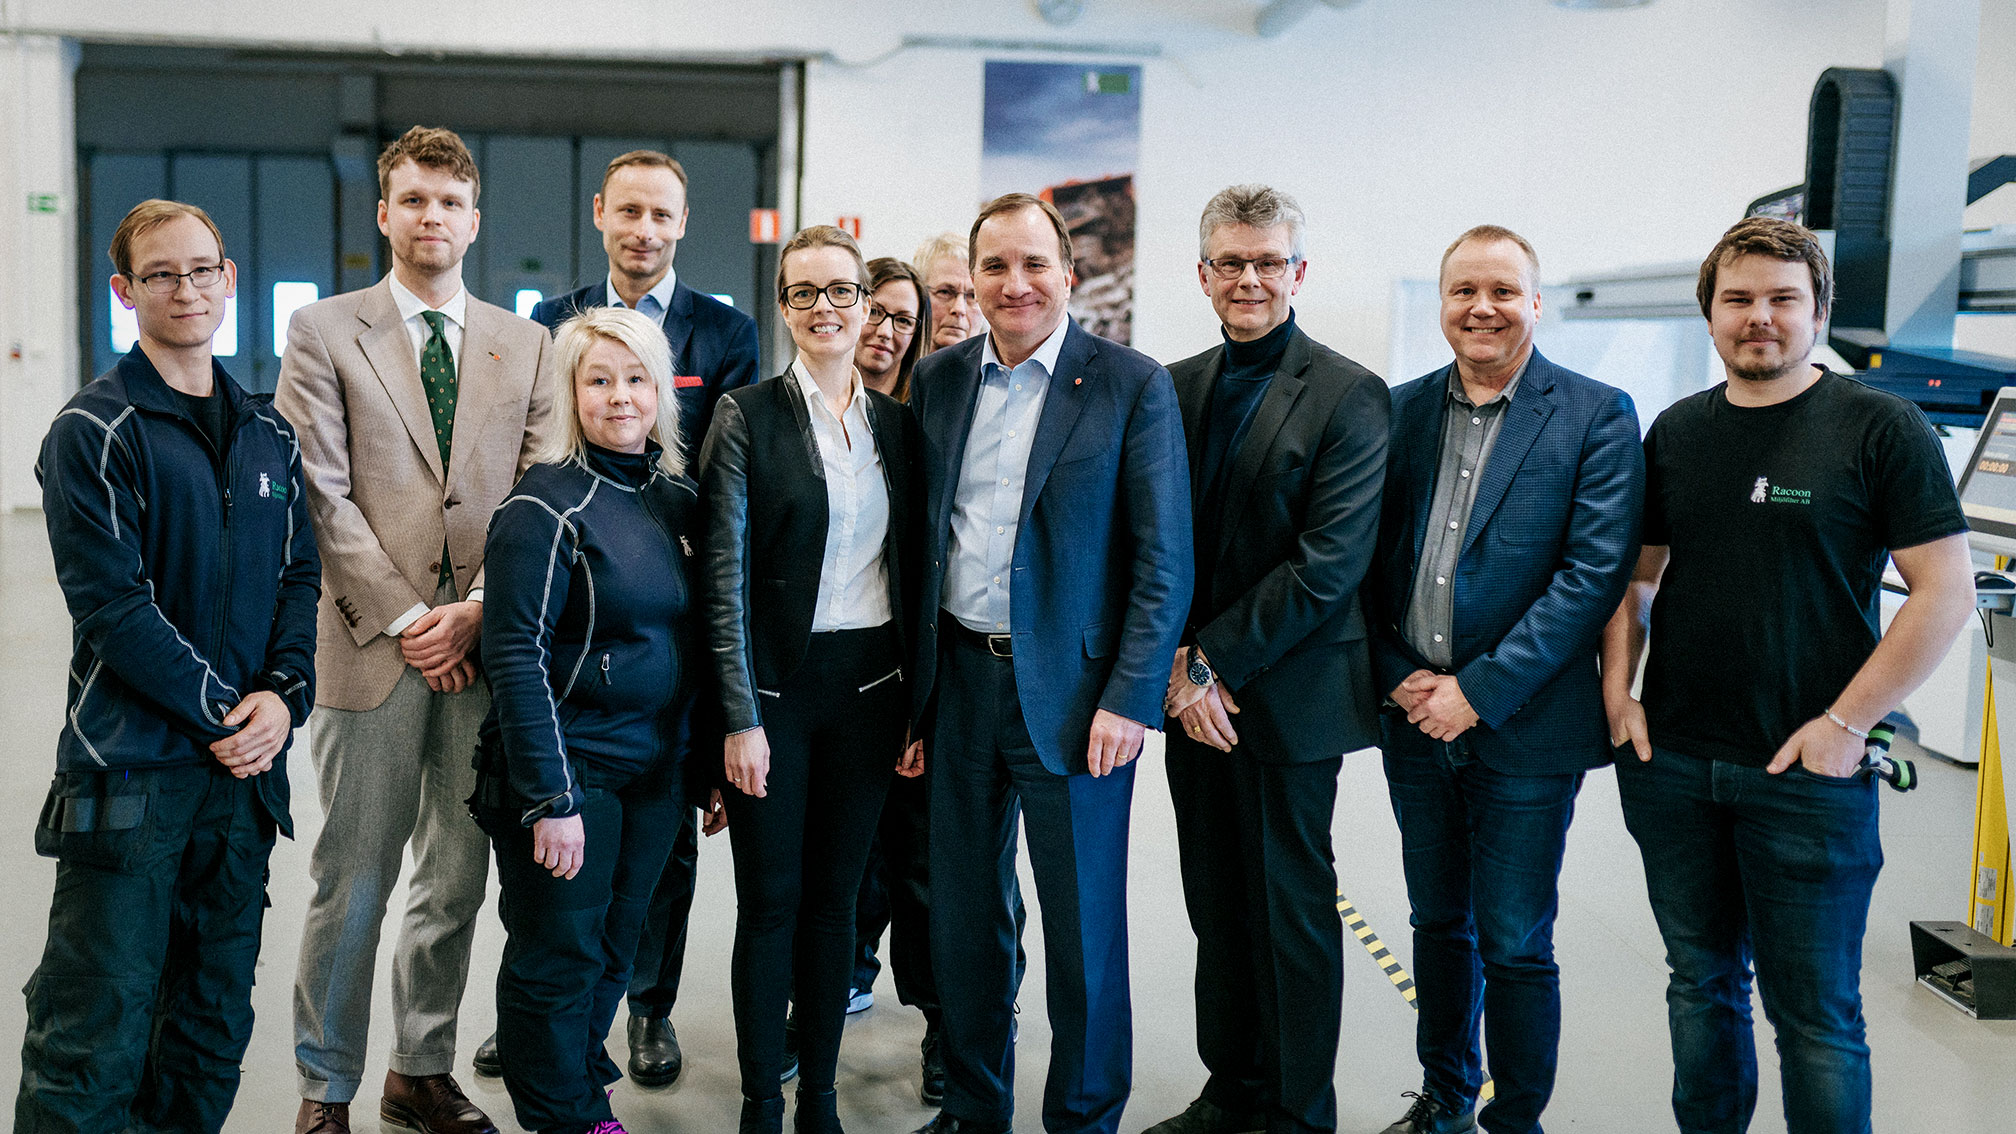 Prime Minister Stefan Löfven visited our factory in February 2018.